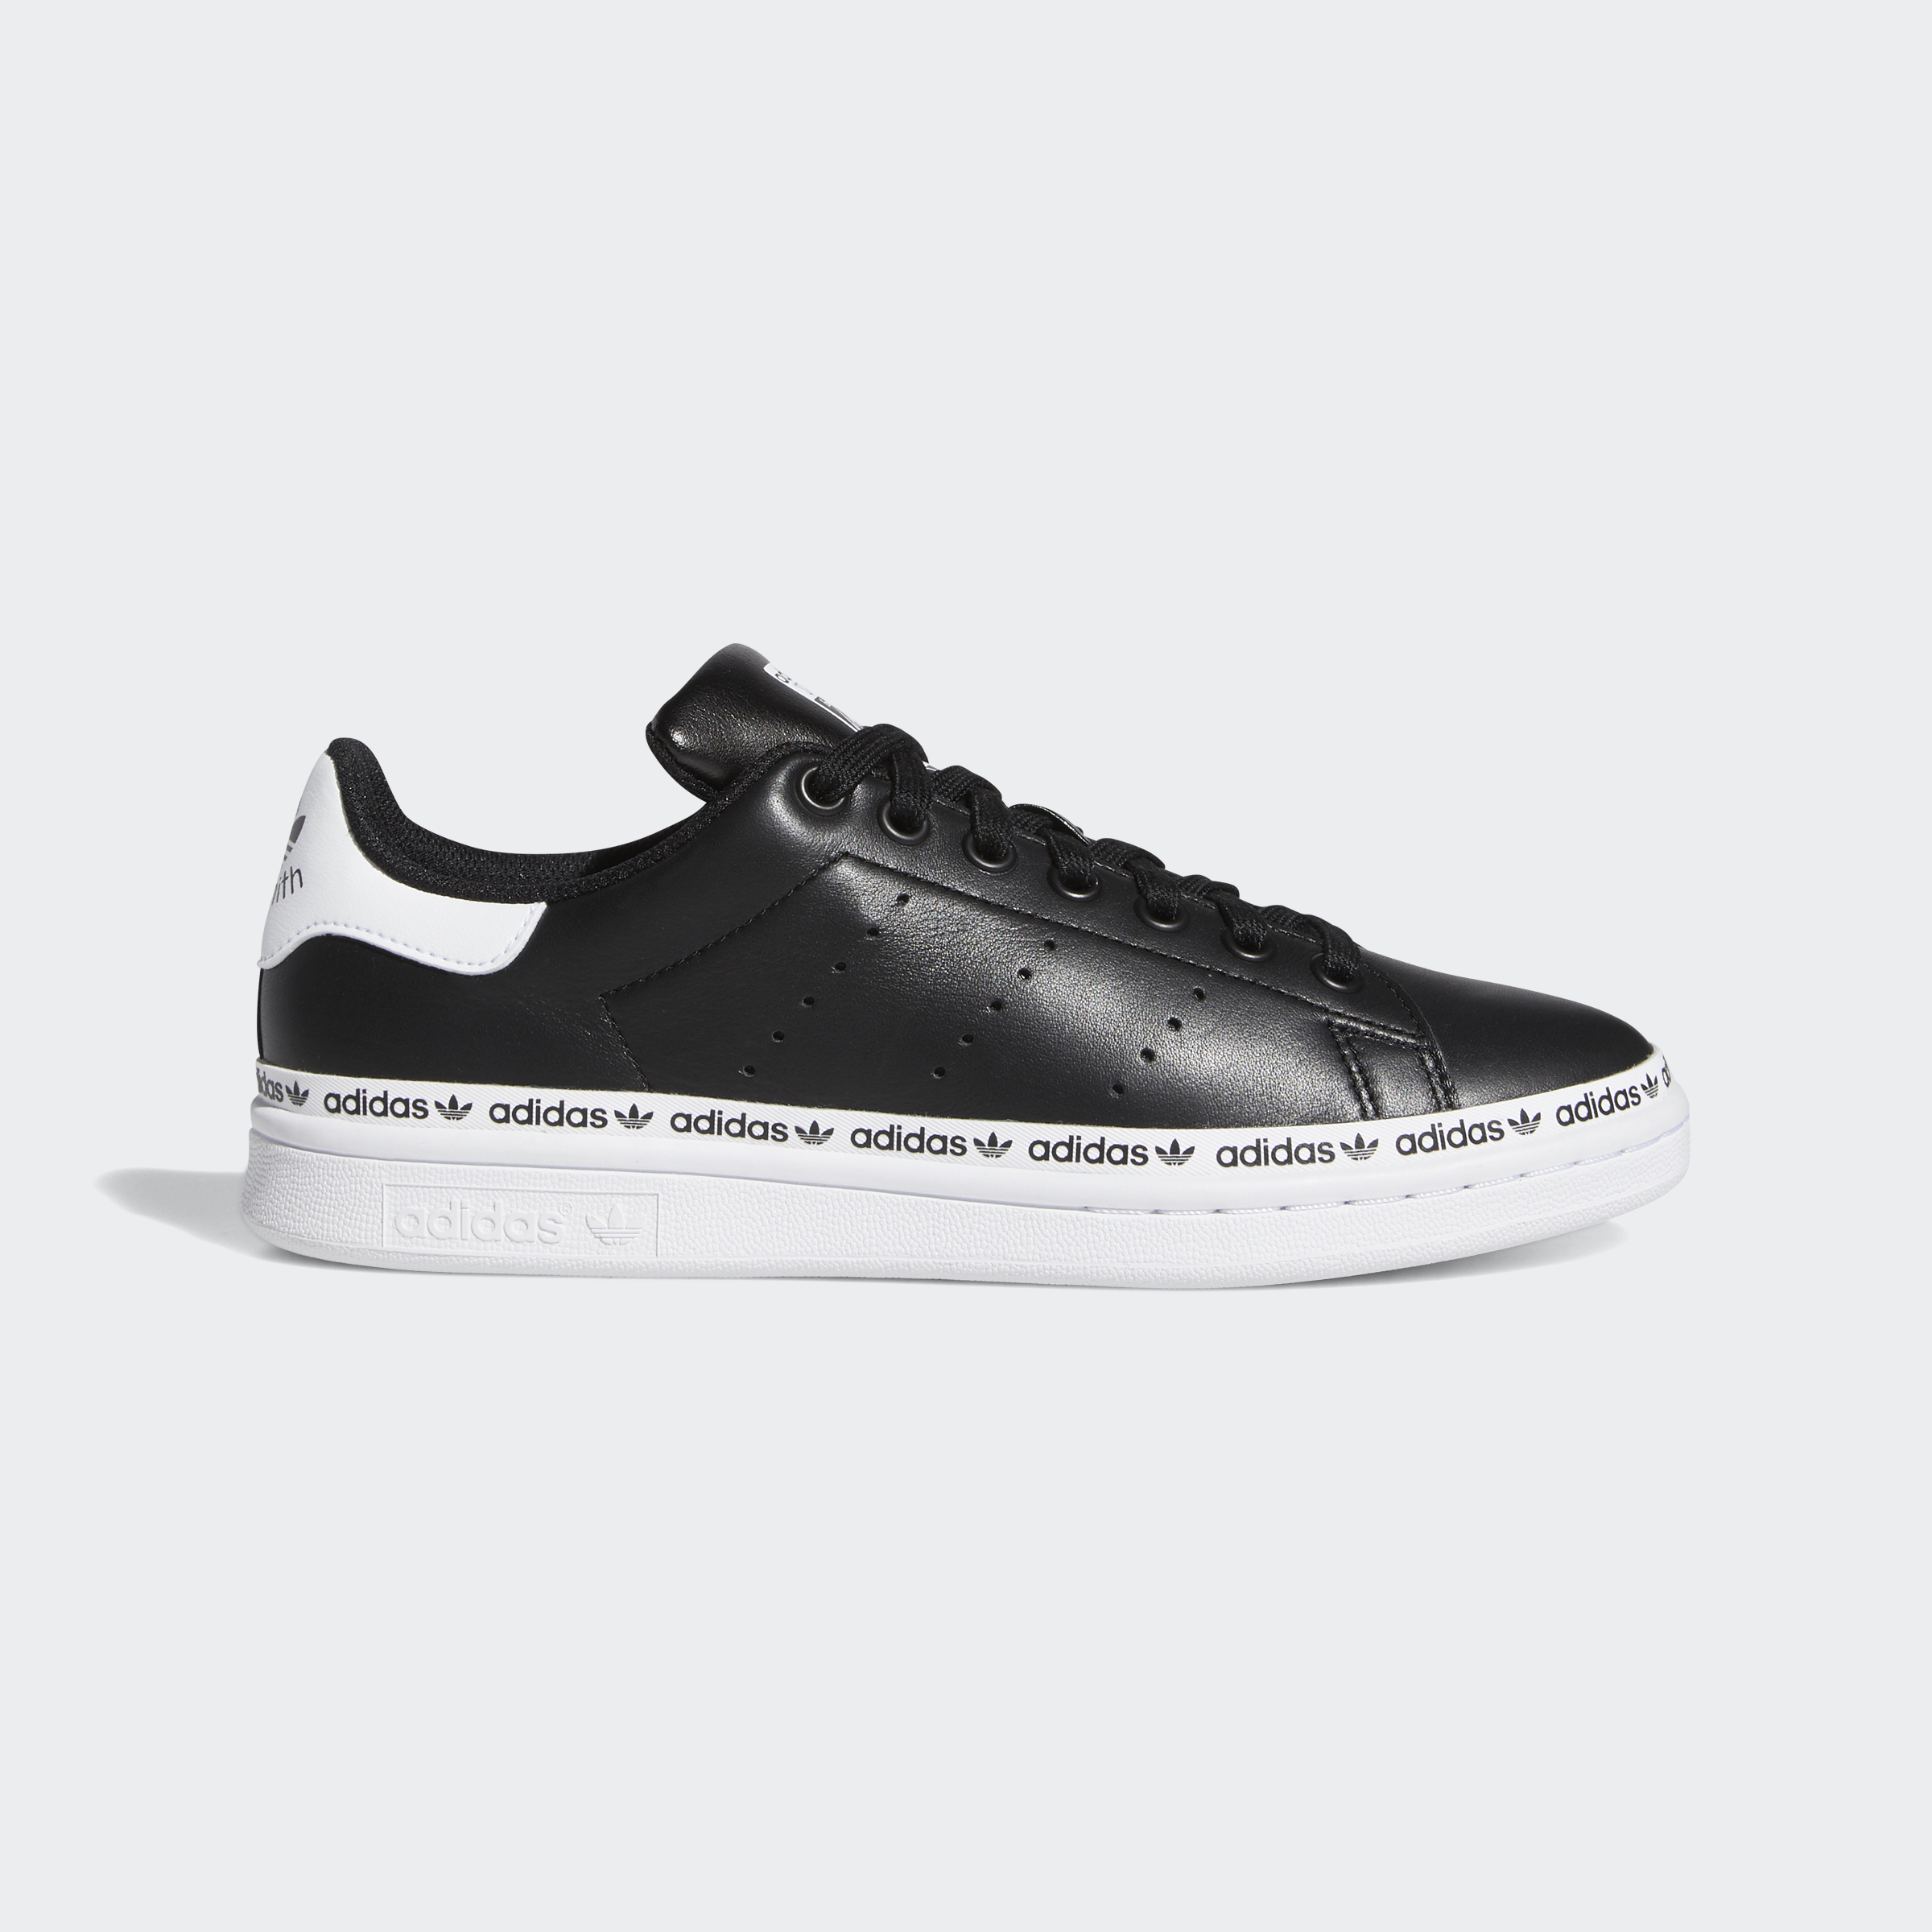 adidas-Stan-Smith-Shoes-Women-039-s-Athletic-amp-Sneakers thumbnail 11